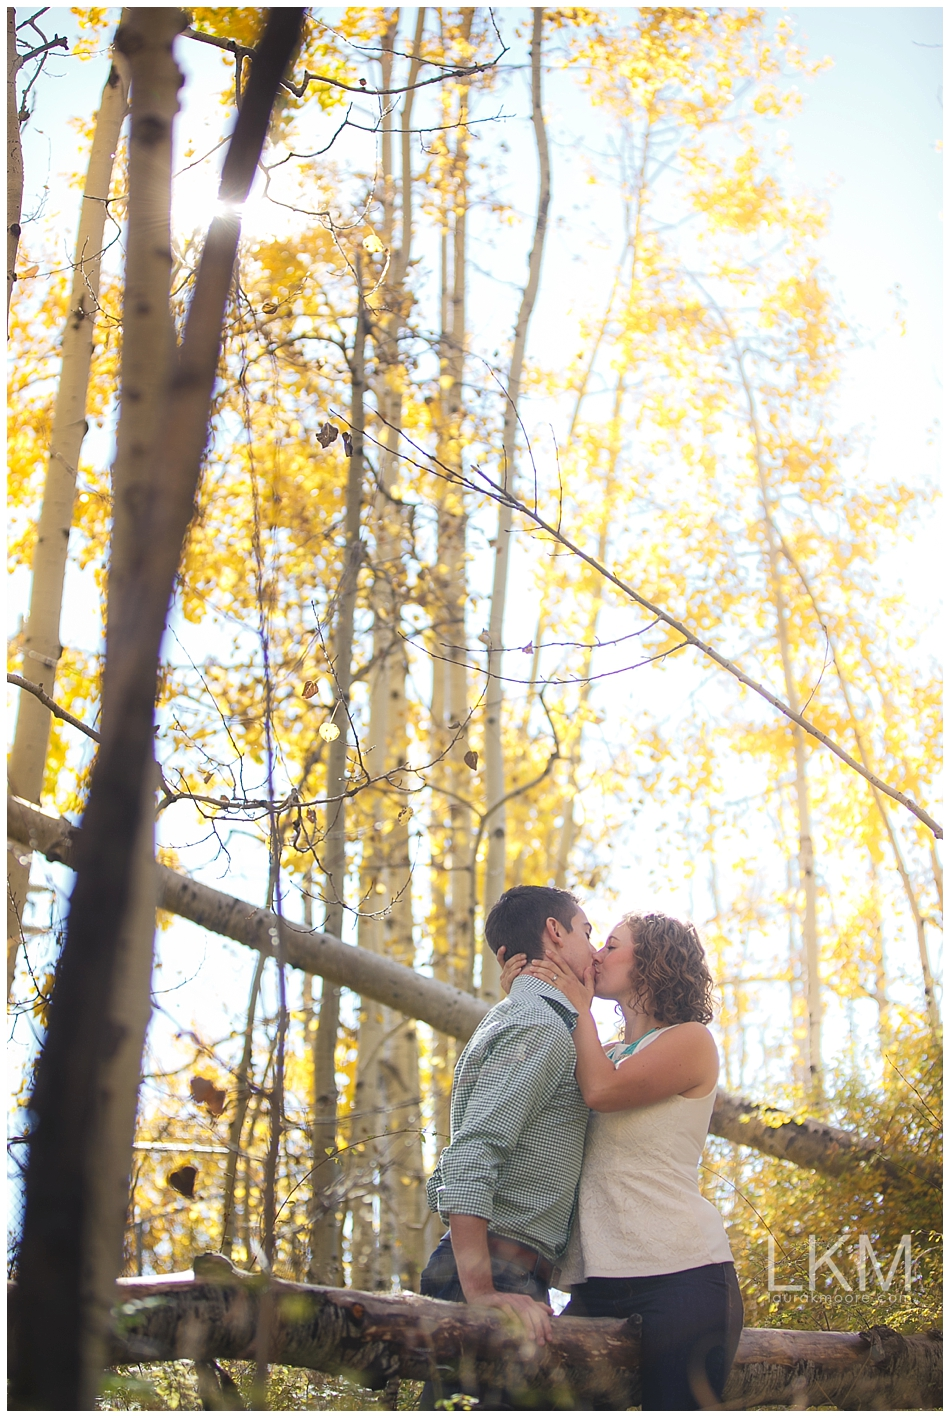 mt-lemon-engagement-session-tucson-wedding-photographer-austin-corrie_0015.jpg